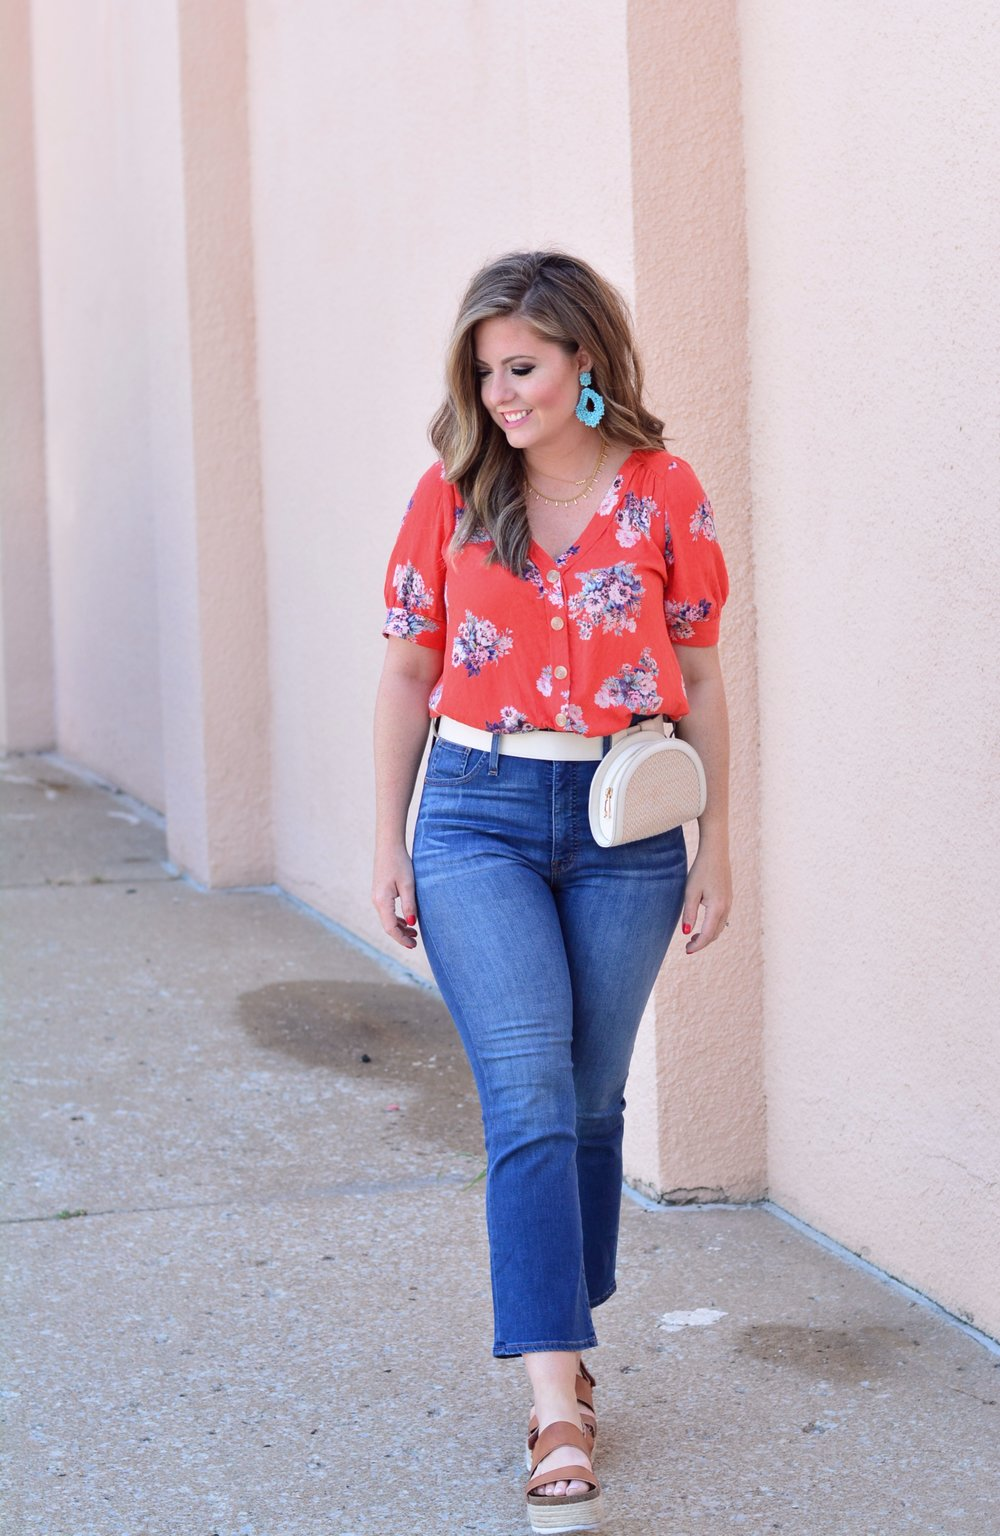 How to wear high waisted jeans for summer